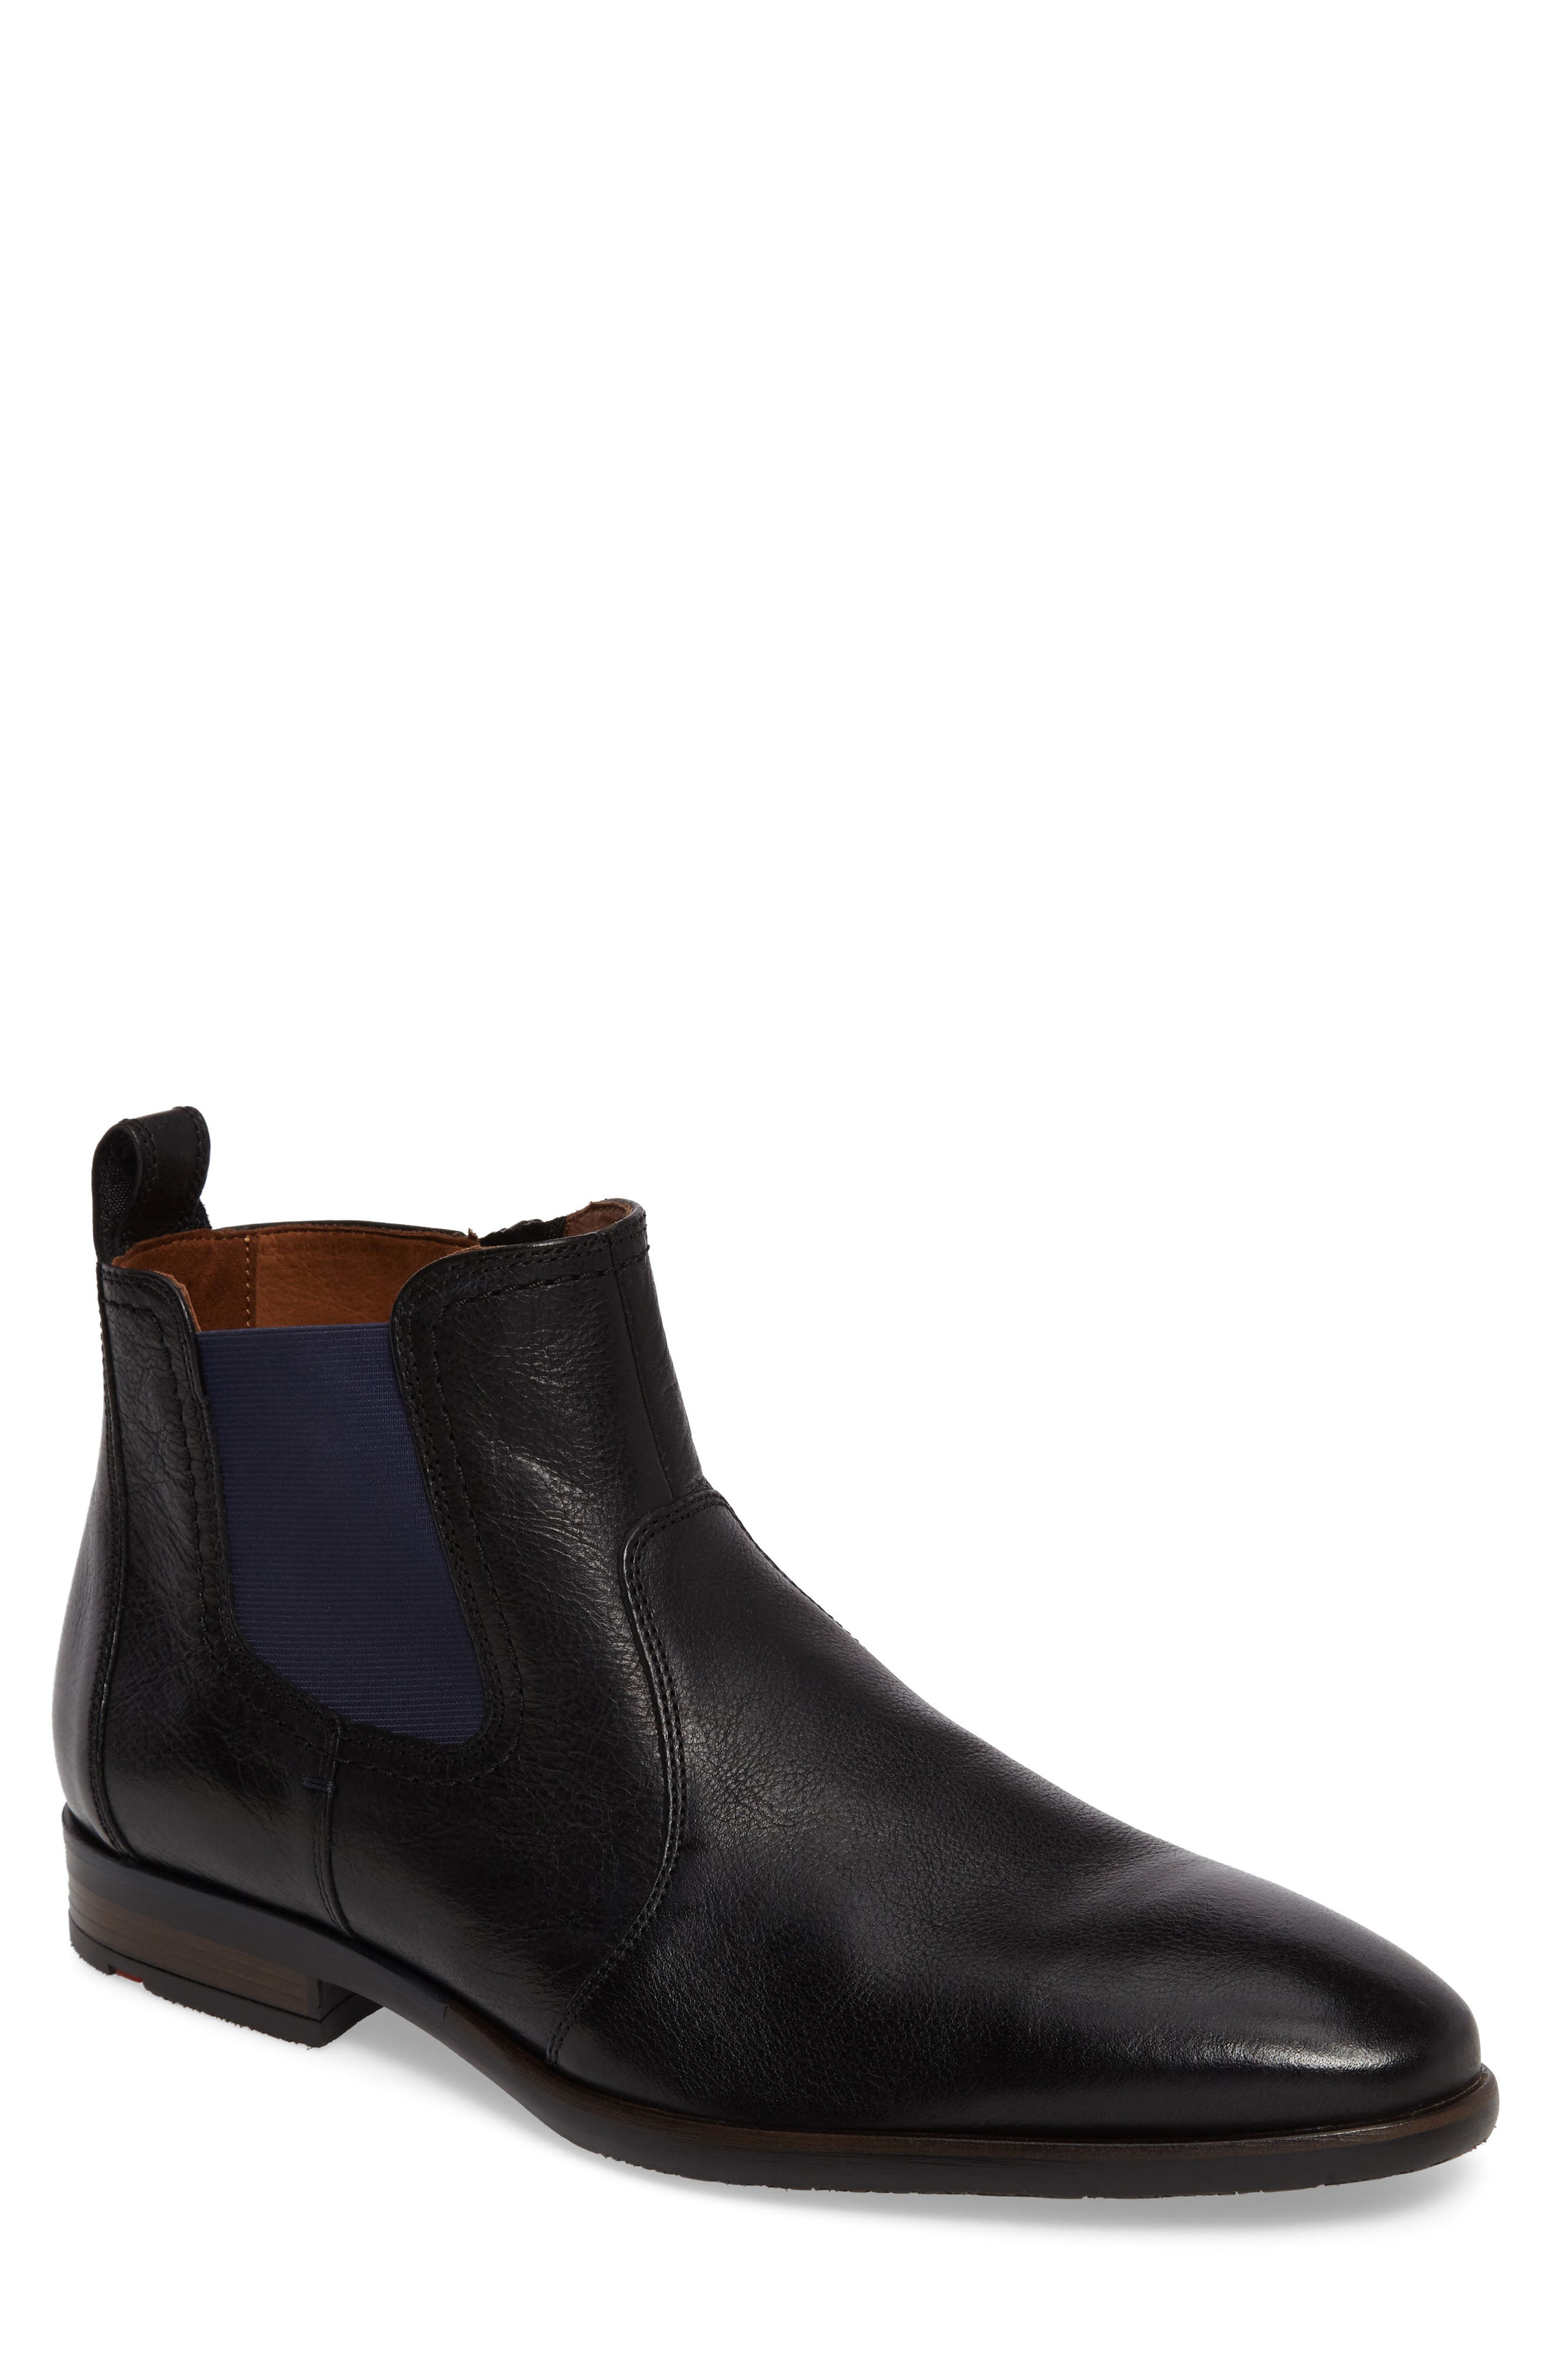 Dylan Chelsea Boot,                         Main,                         color, 001